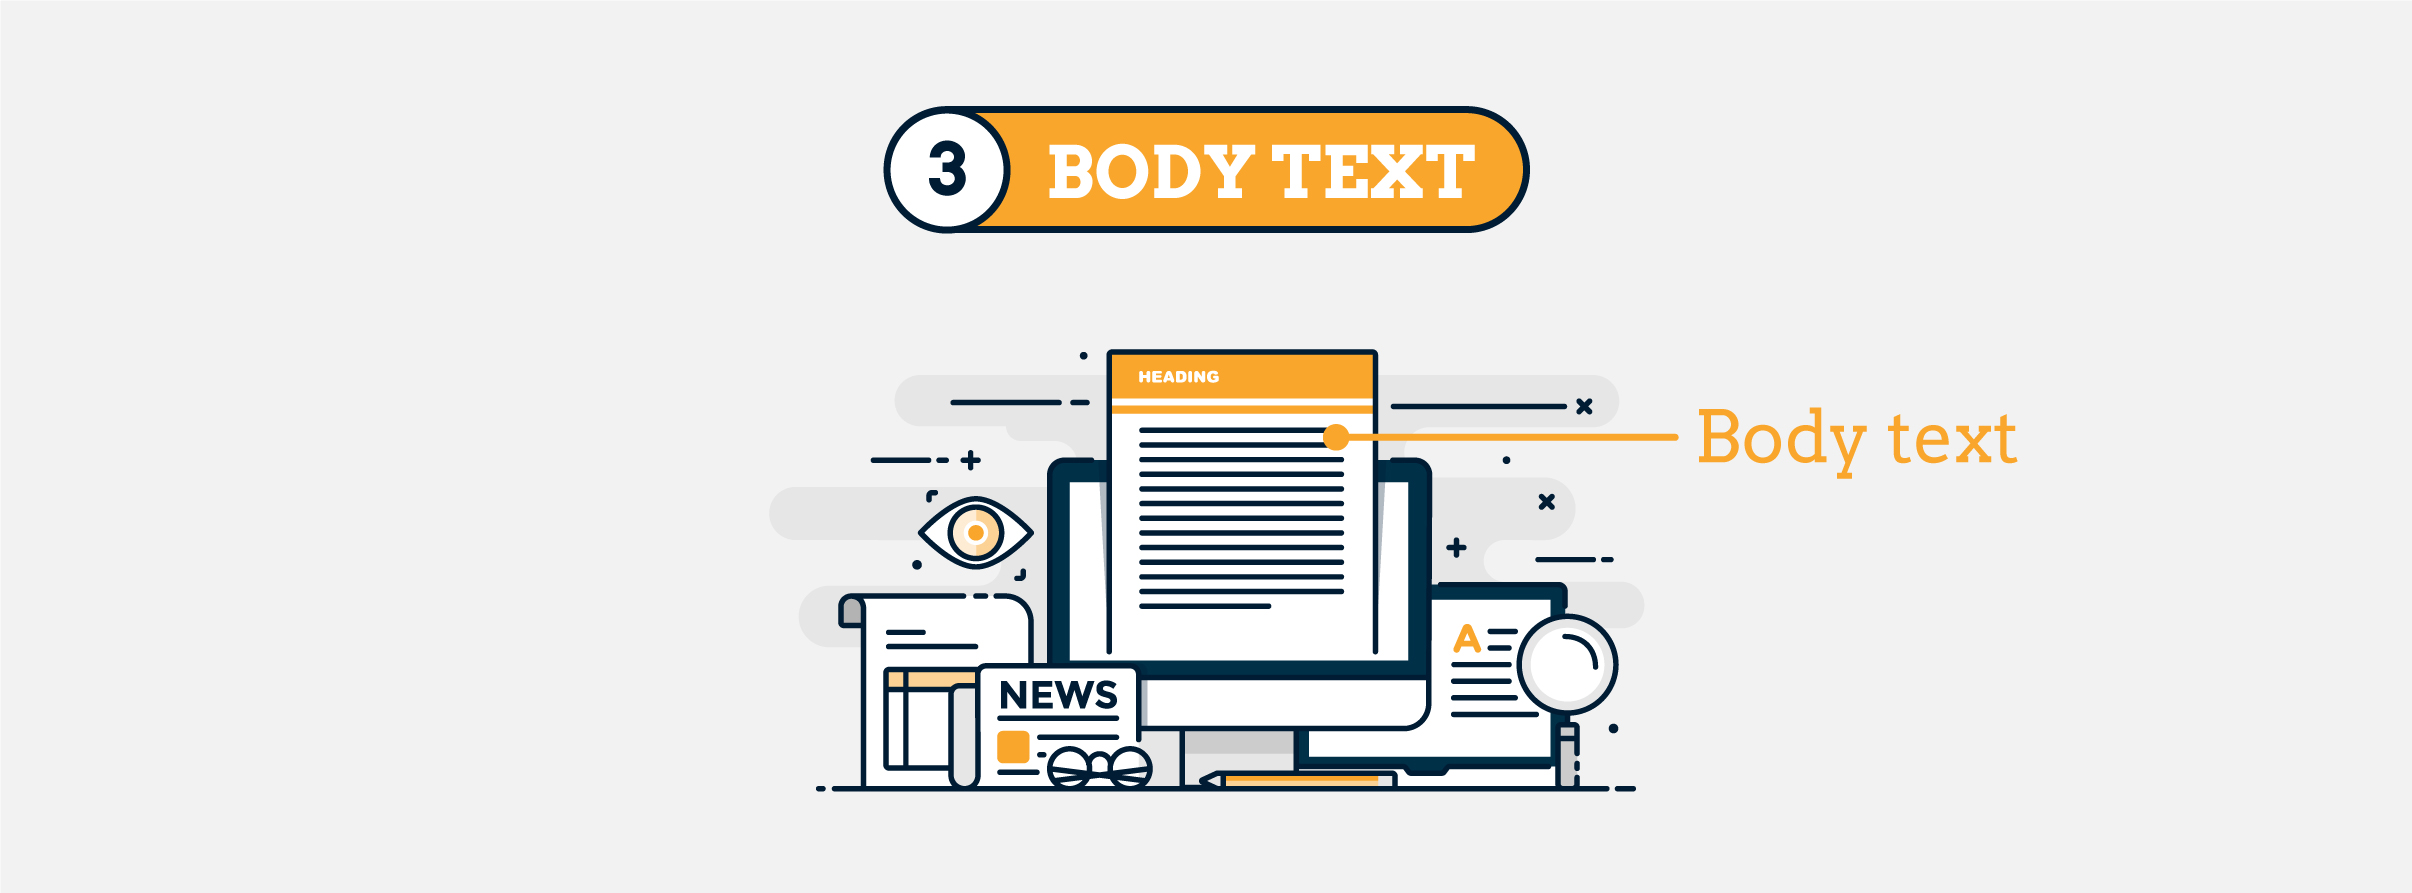 Design terms - body text